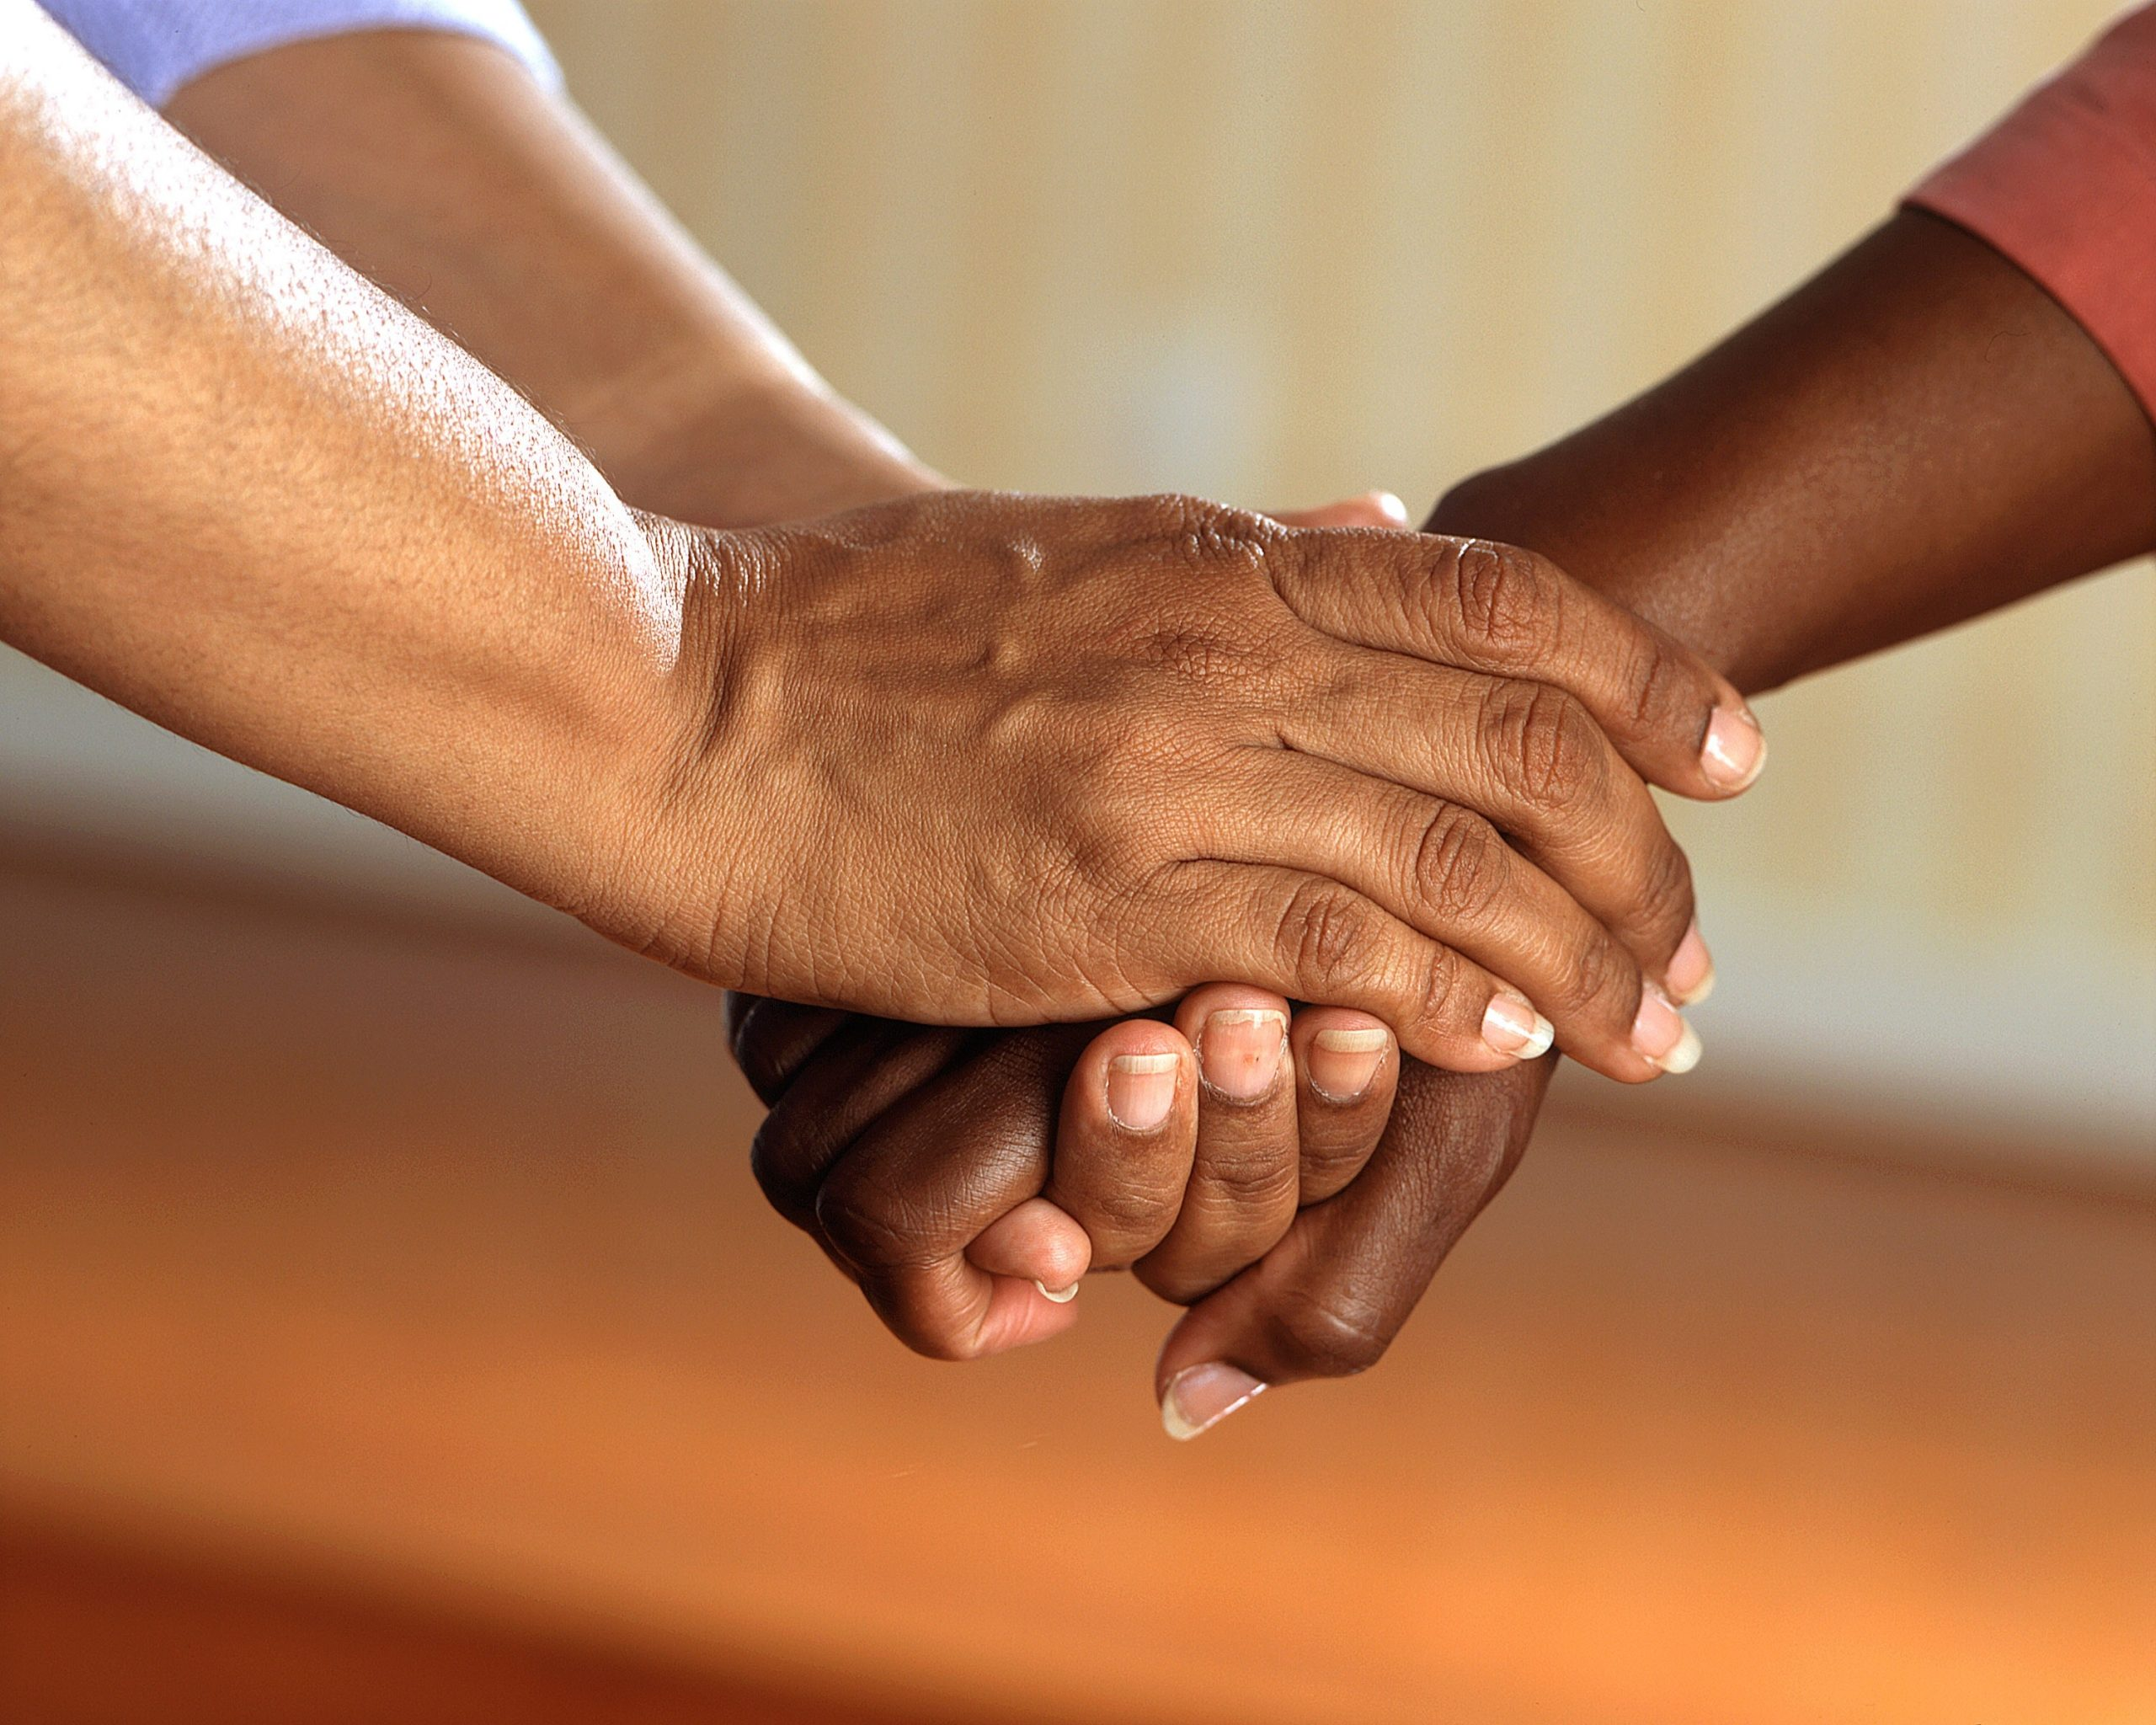 Everything to Consider When Choosing a Home Nursing Service